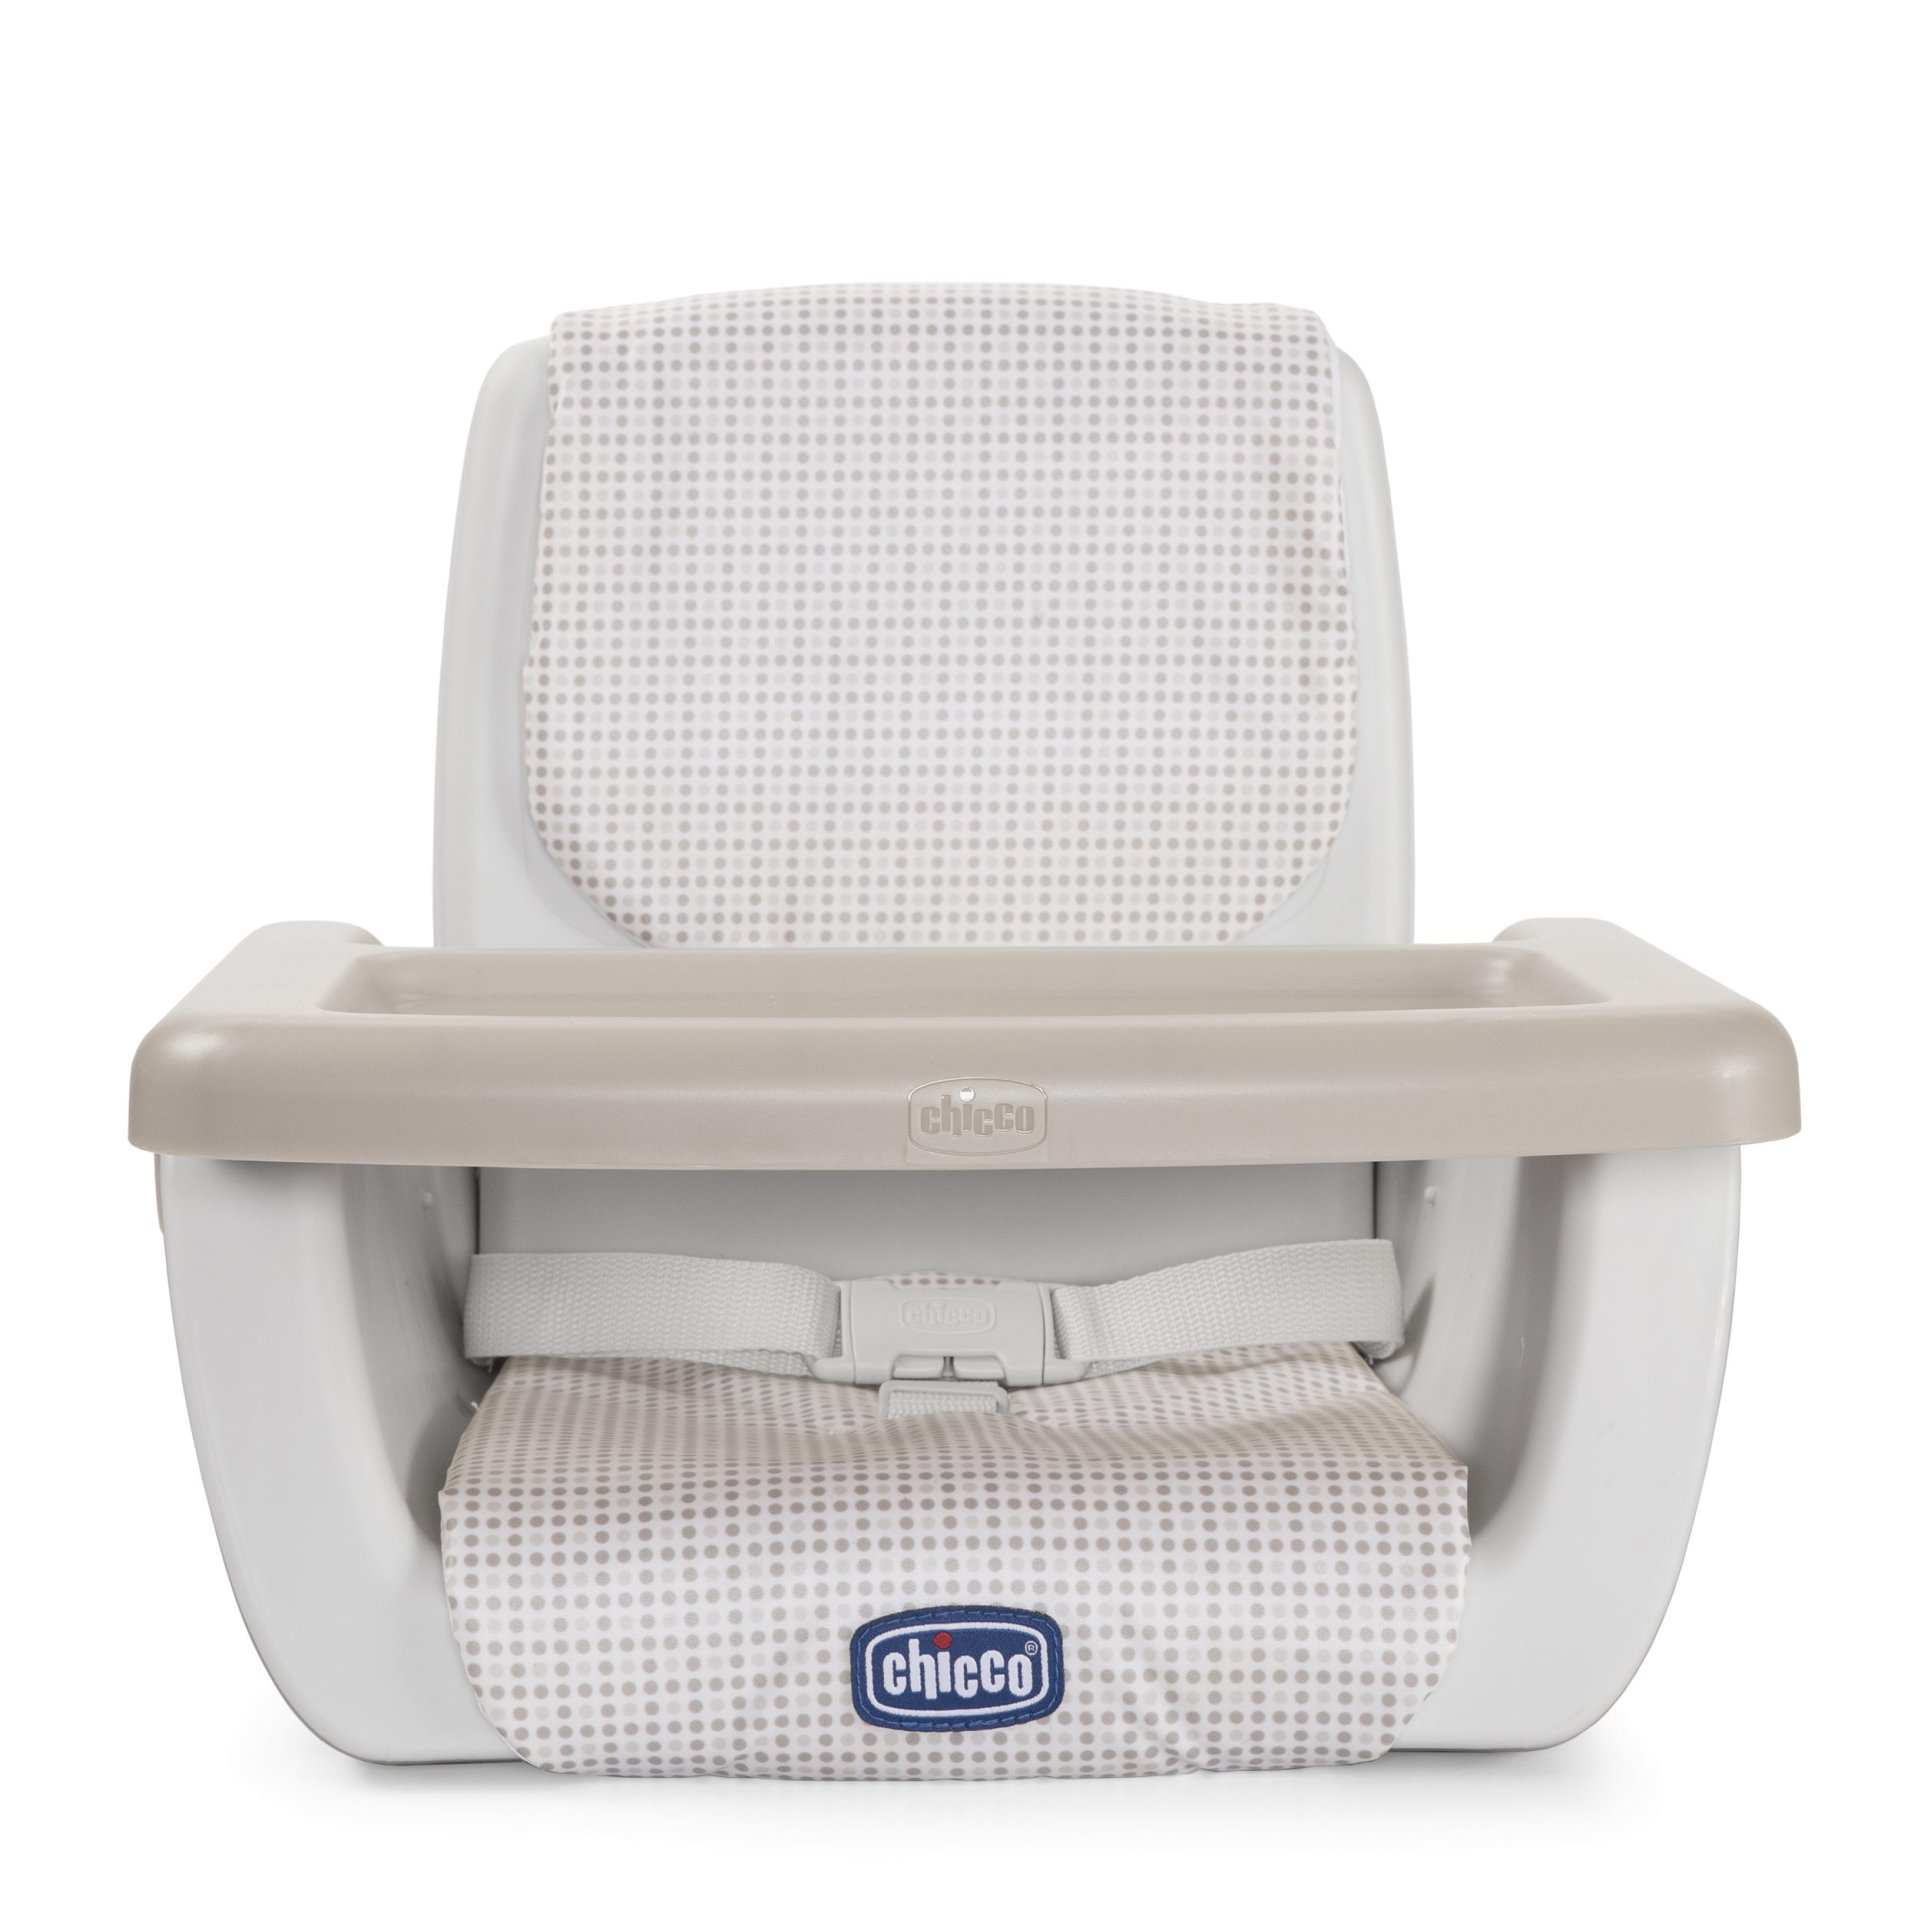 Mode Booster Seat Poised Parenting Hub